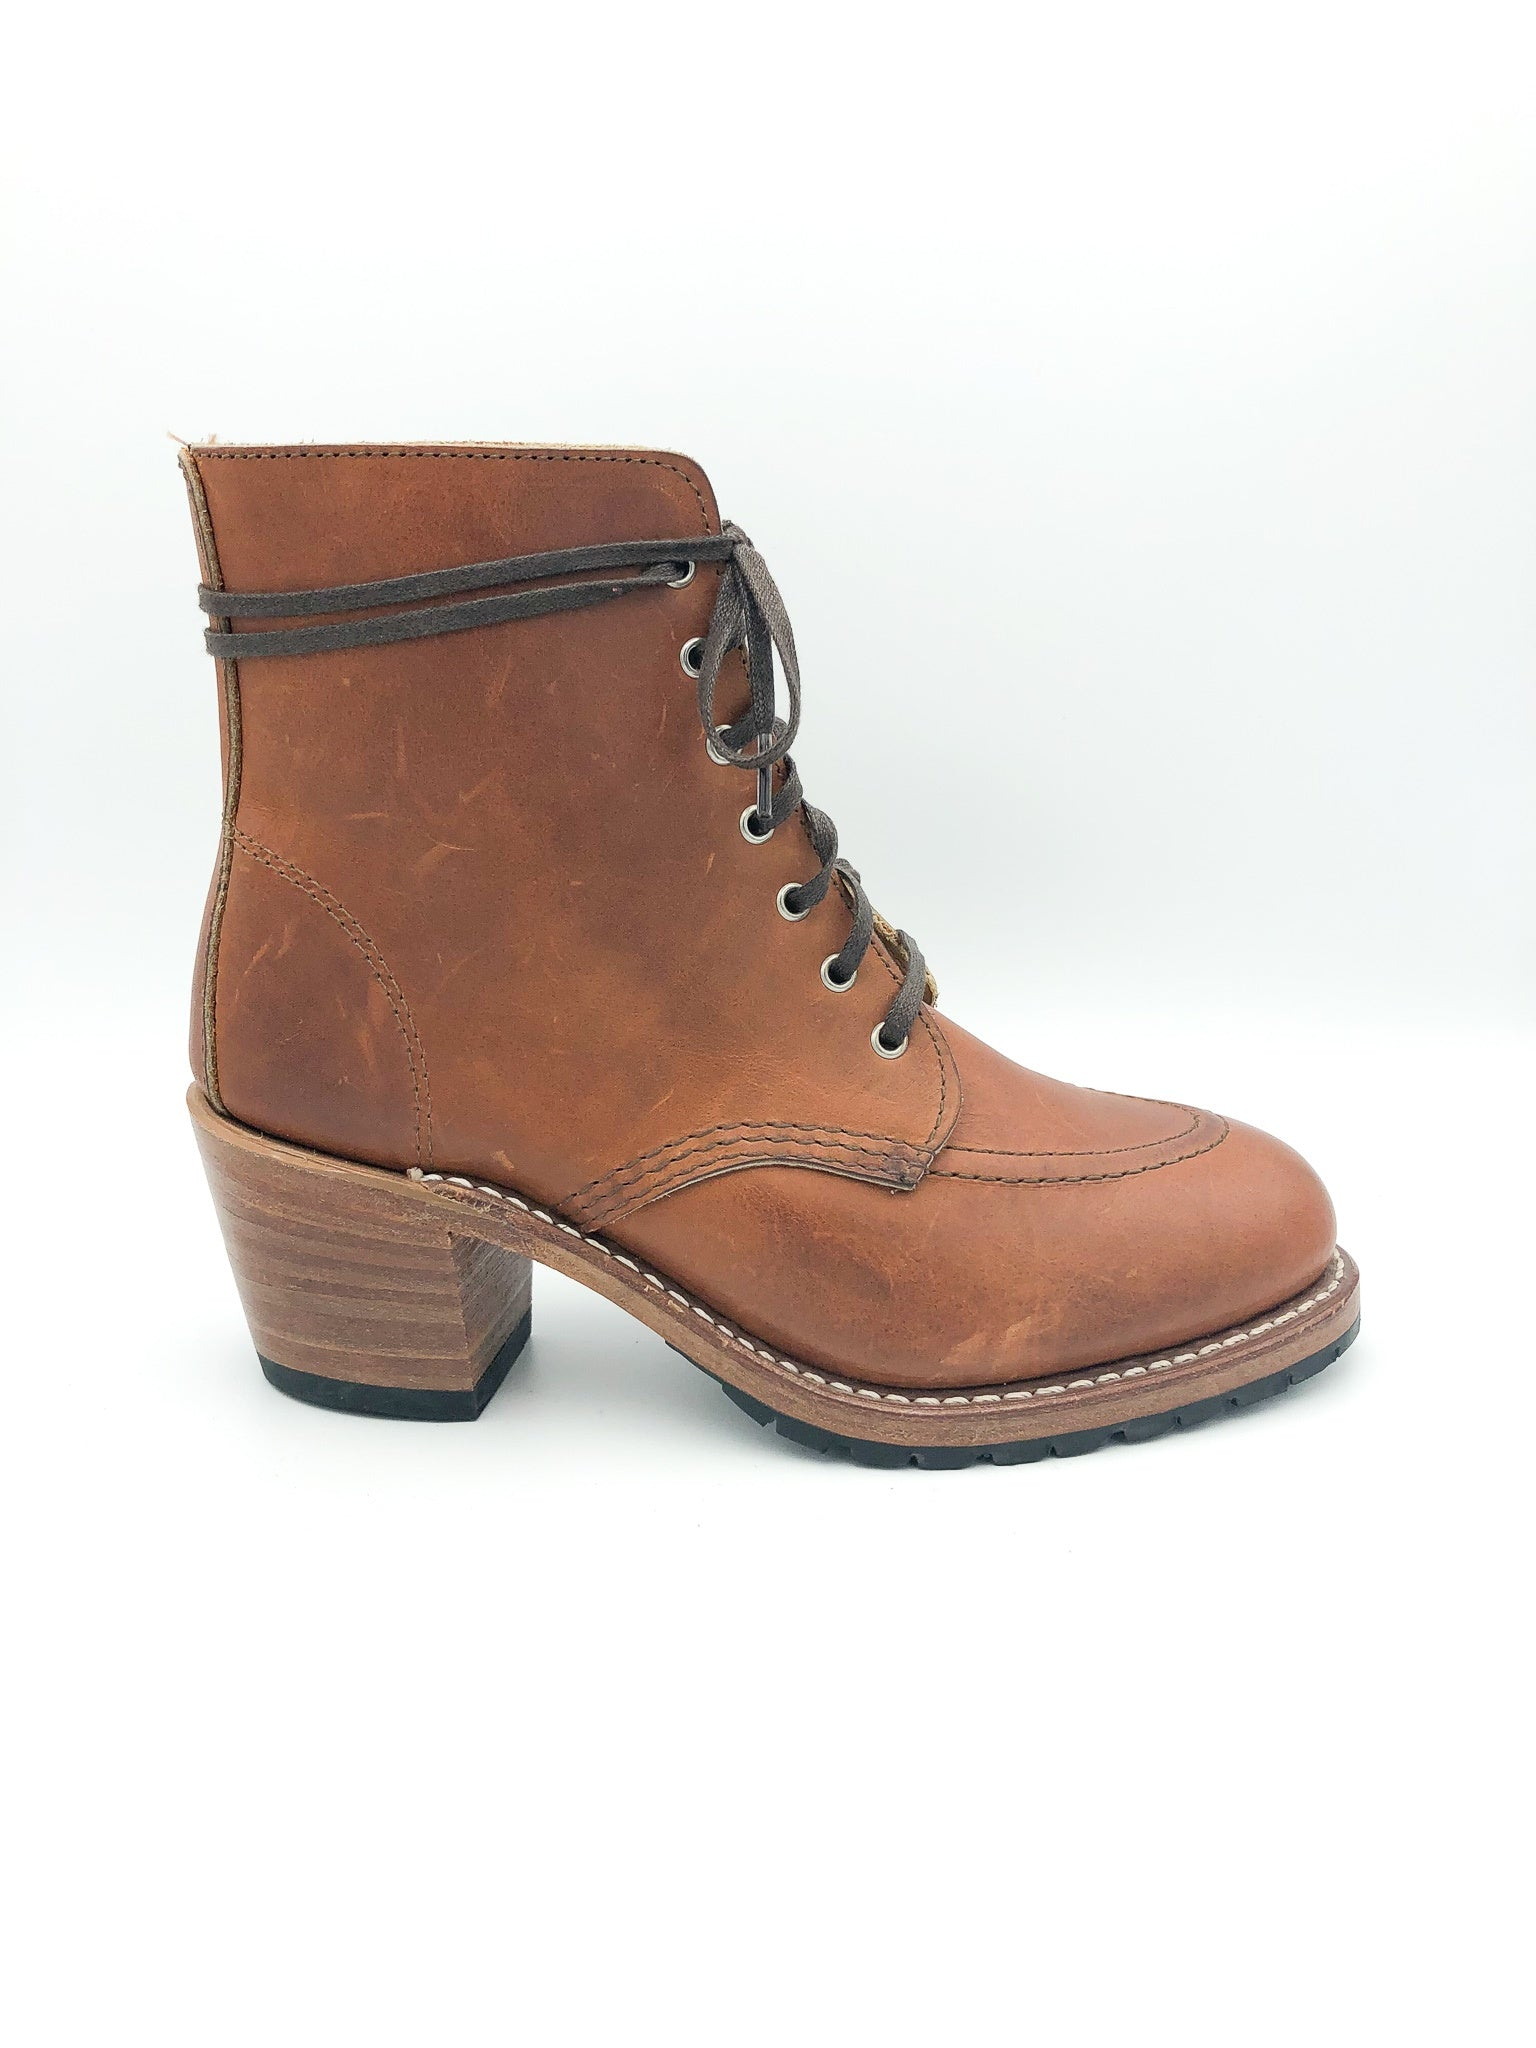 RED WING - WOMEN'S CLARA IN ORO LEGACY